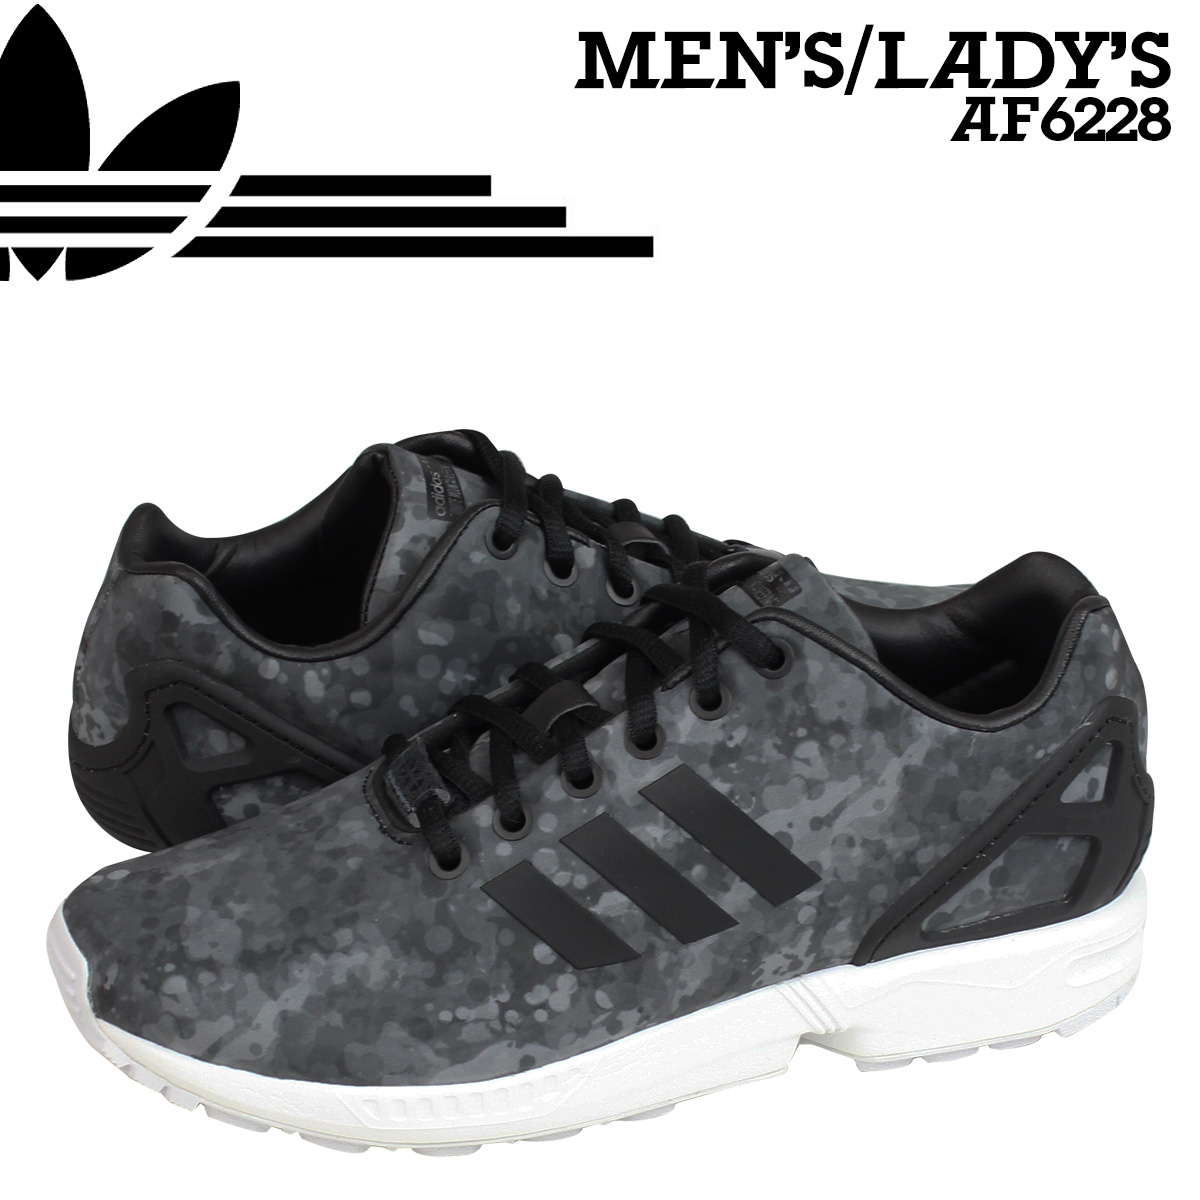 new styles f2fc3 b7574 adidas consortium Adidas originals CONSORTIUM ZX FLUX sneakers  collaboration AF6228 men gap Dis shoes black